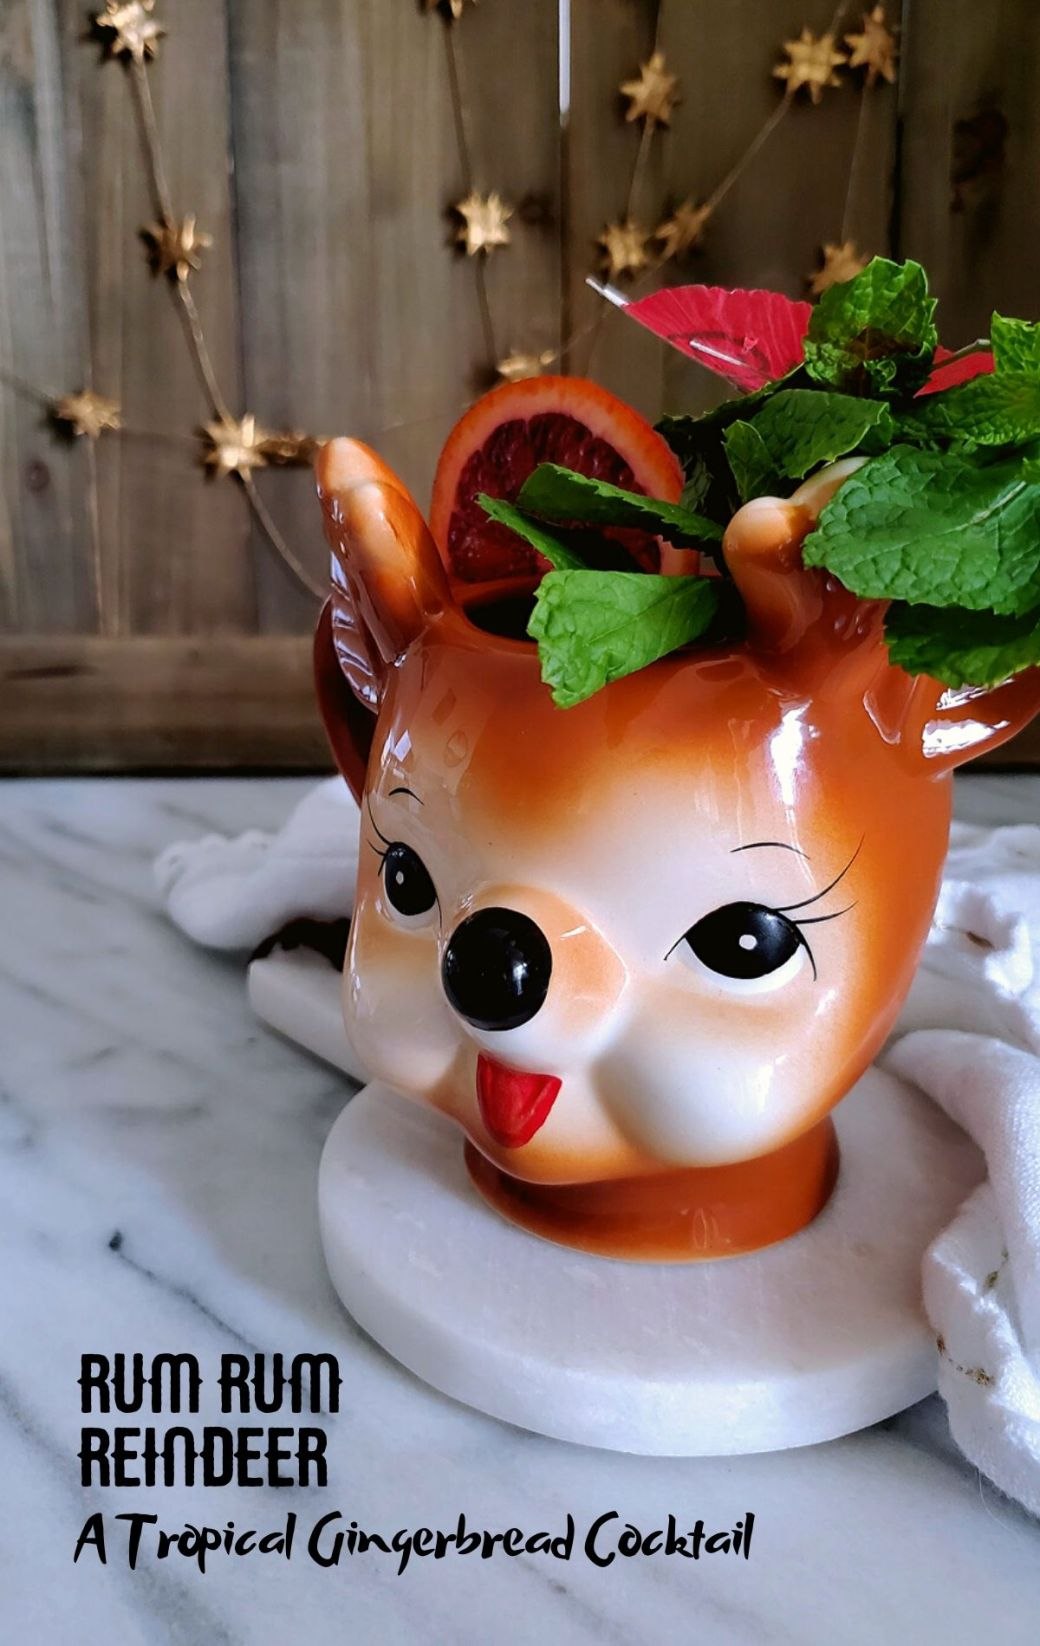 Rum Rum Reindeer | A Tropical Gingerbread Cocktail